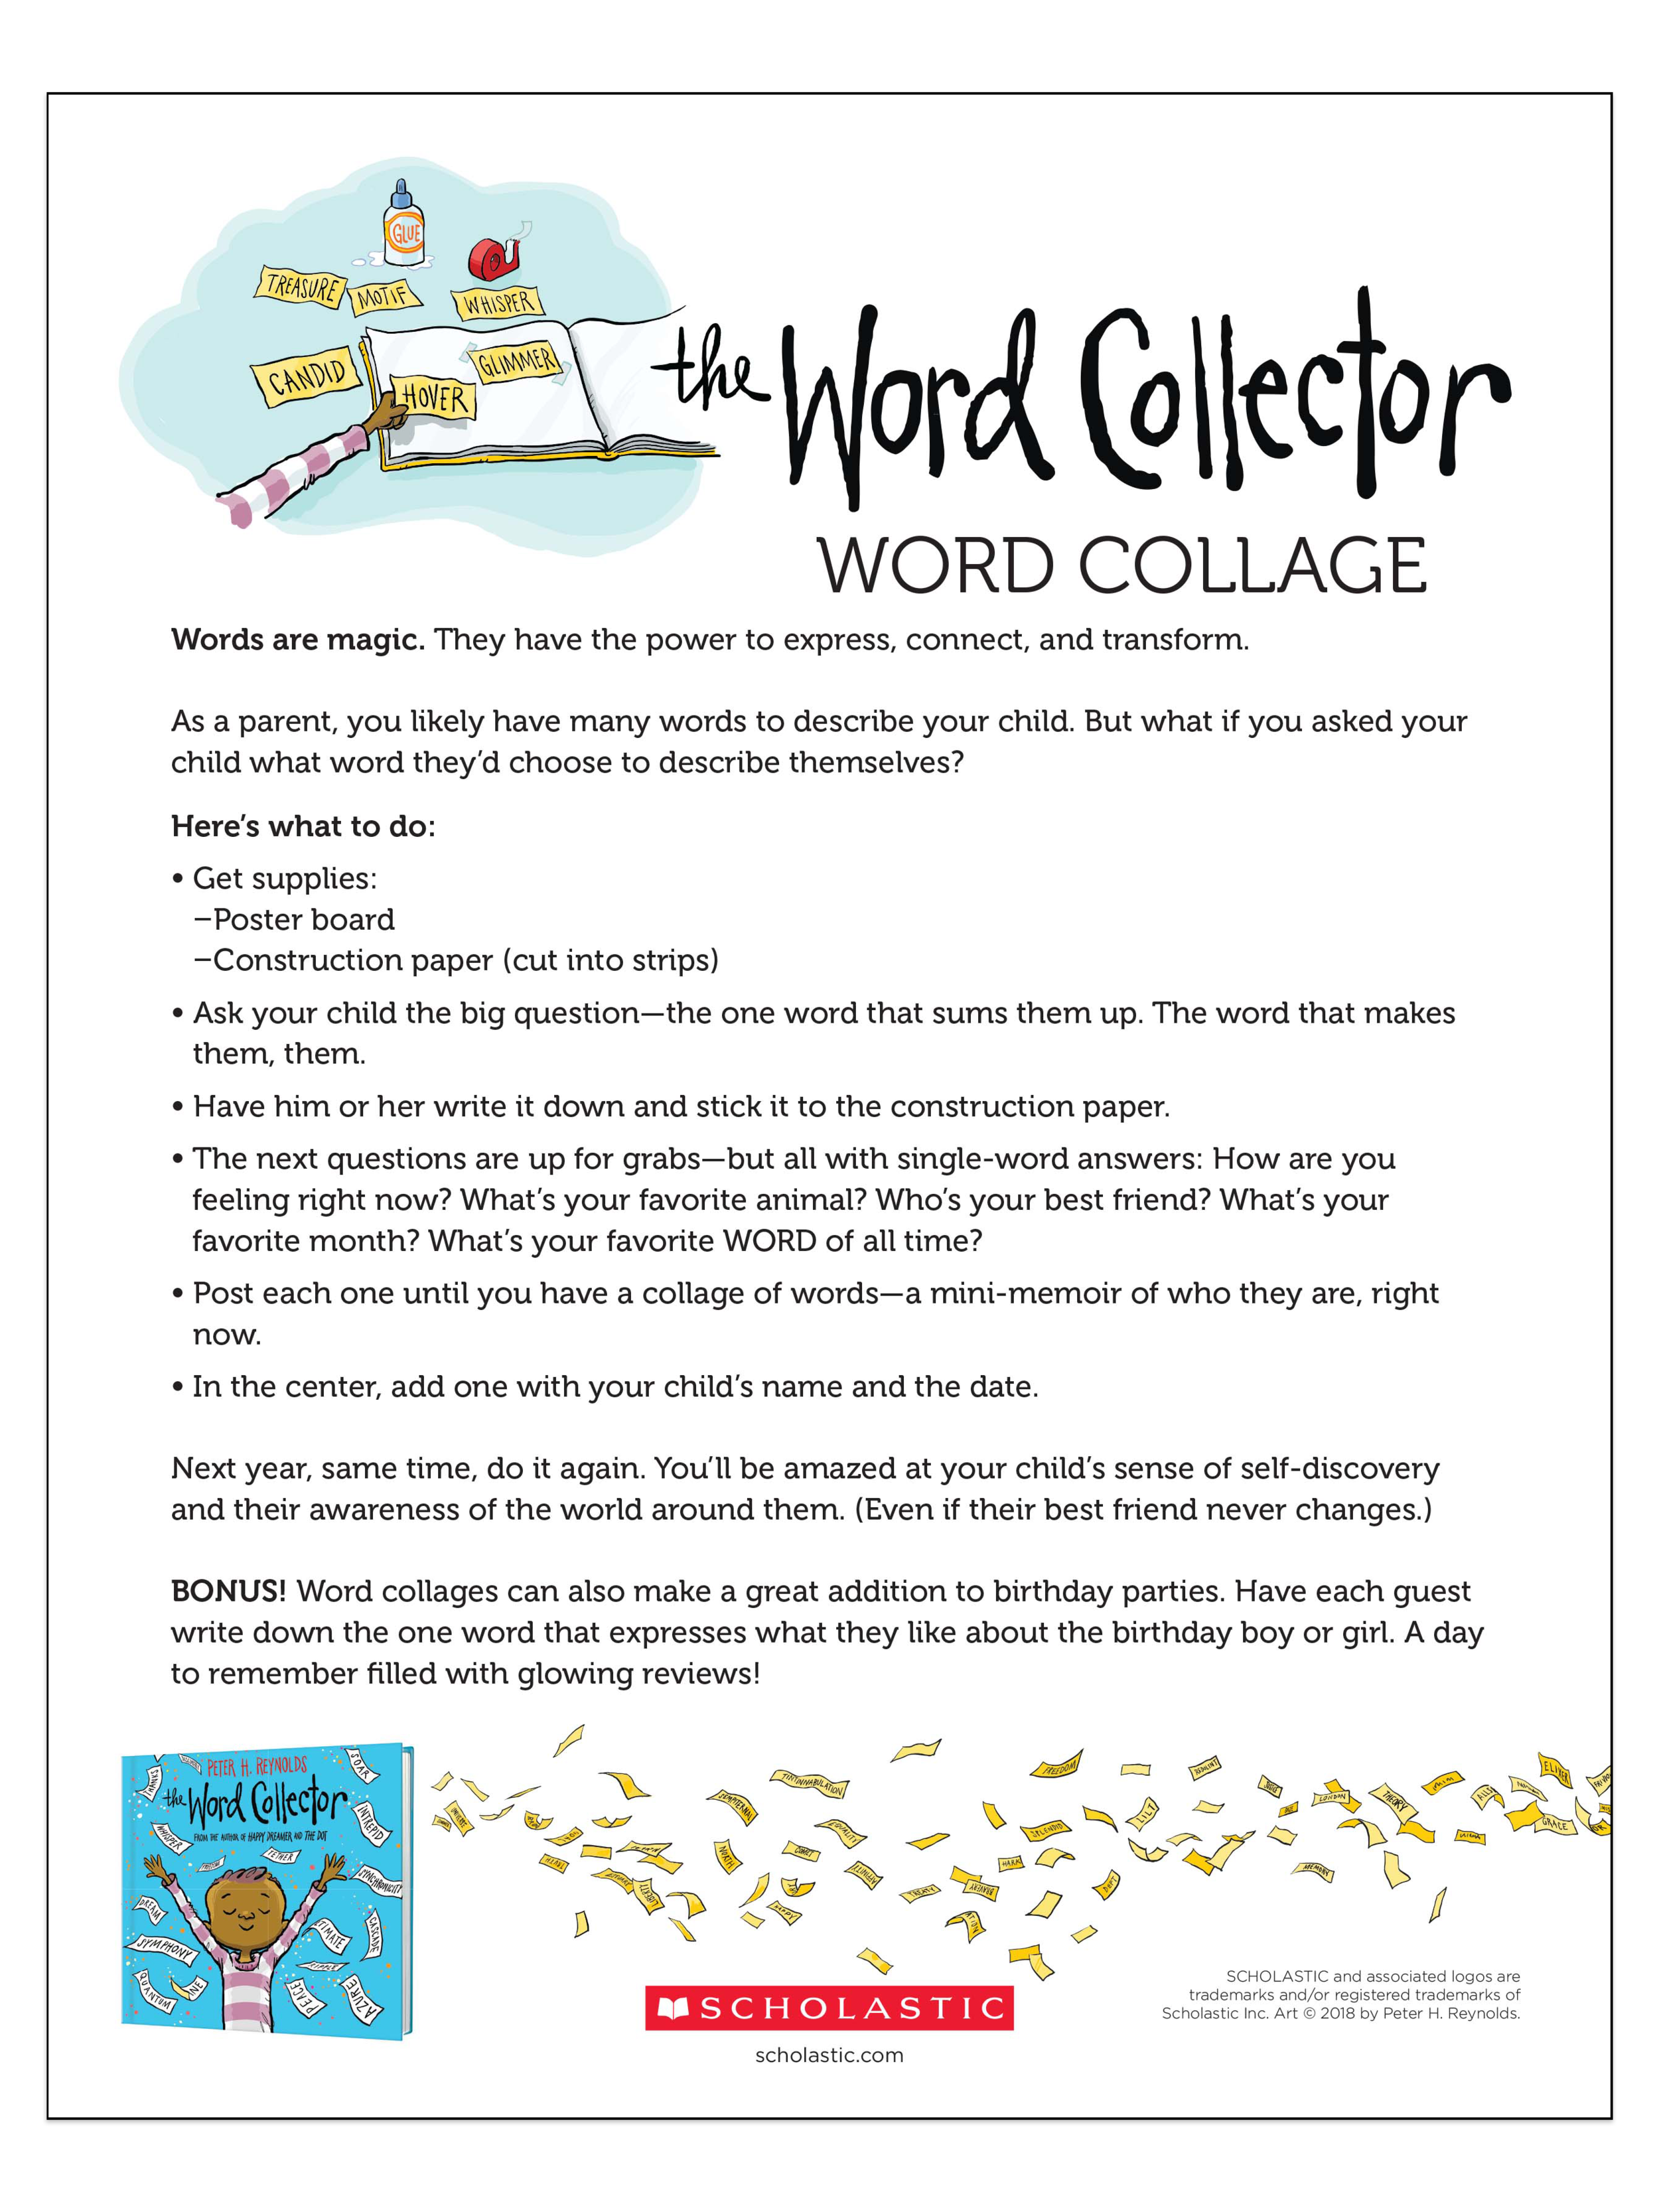 Scholastic_WordCollector_WordCollage.png